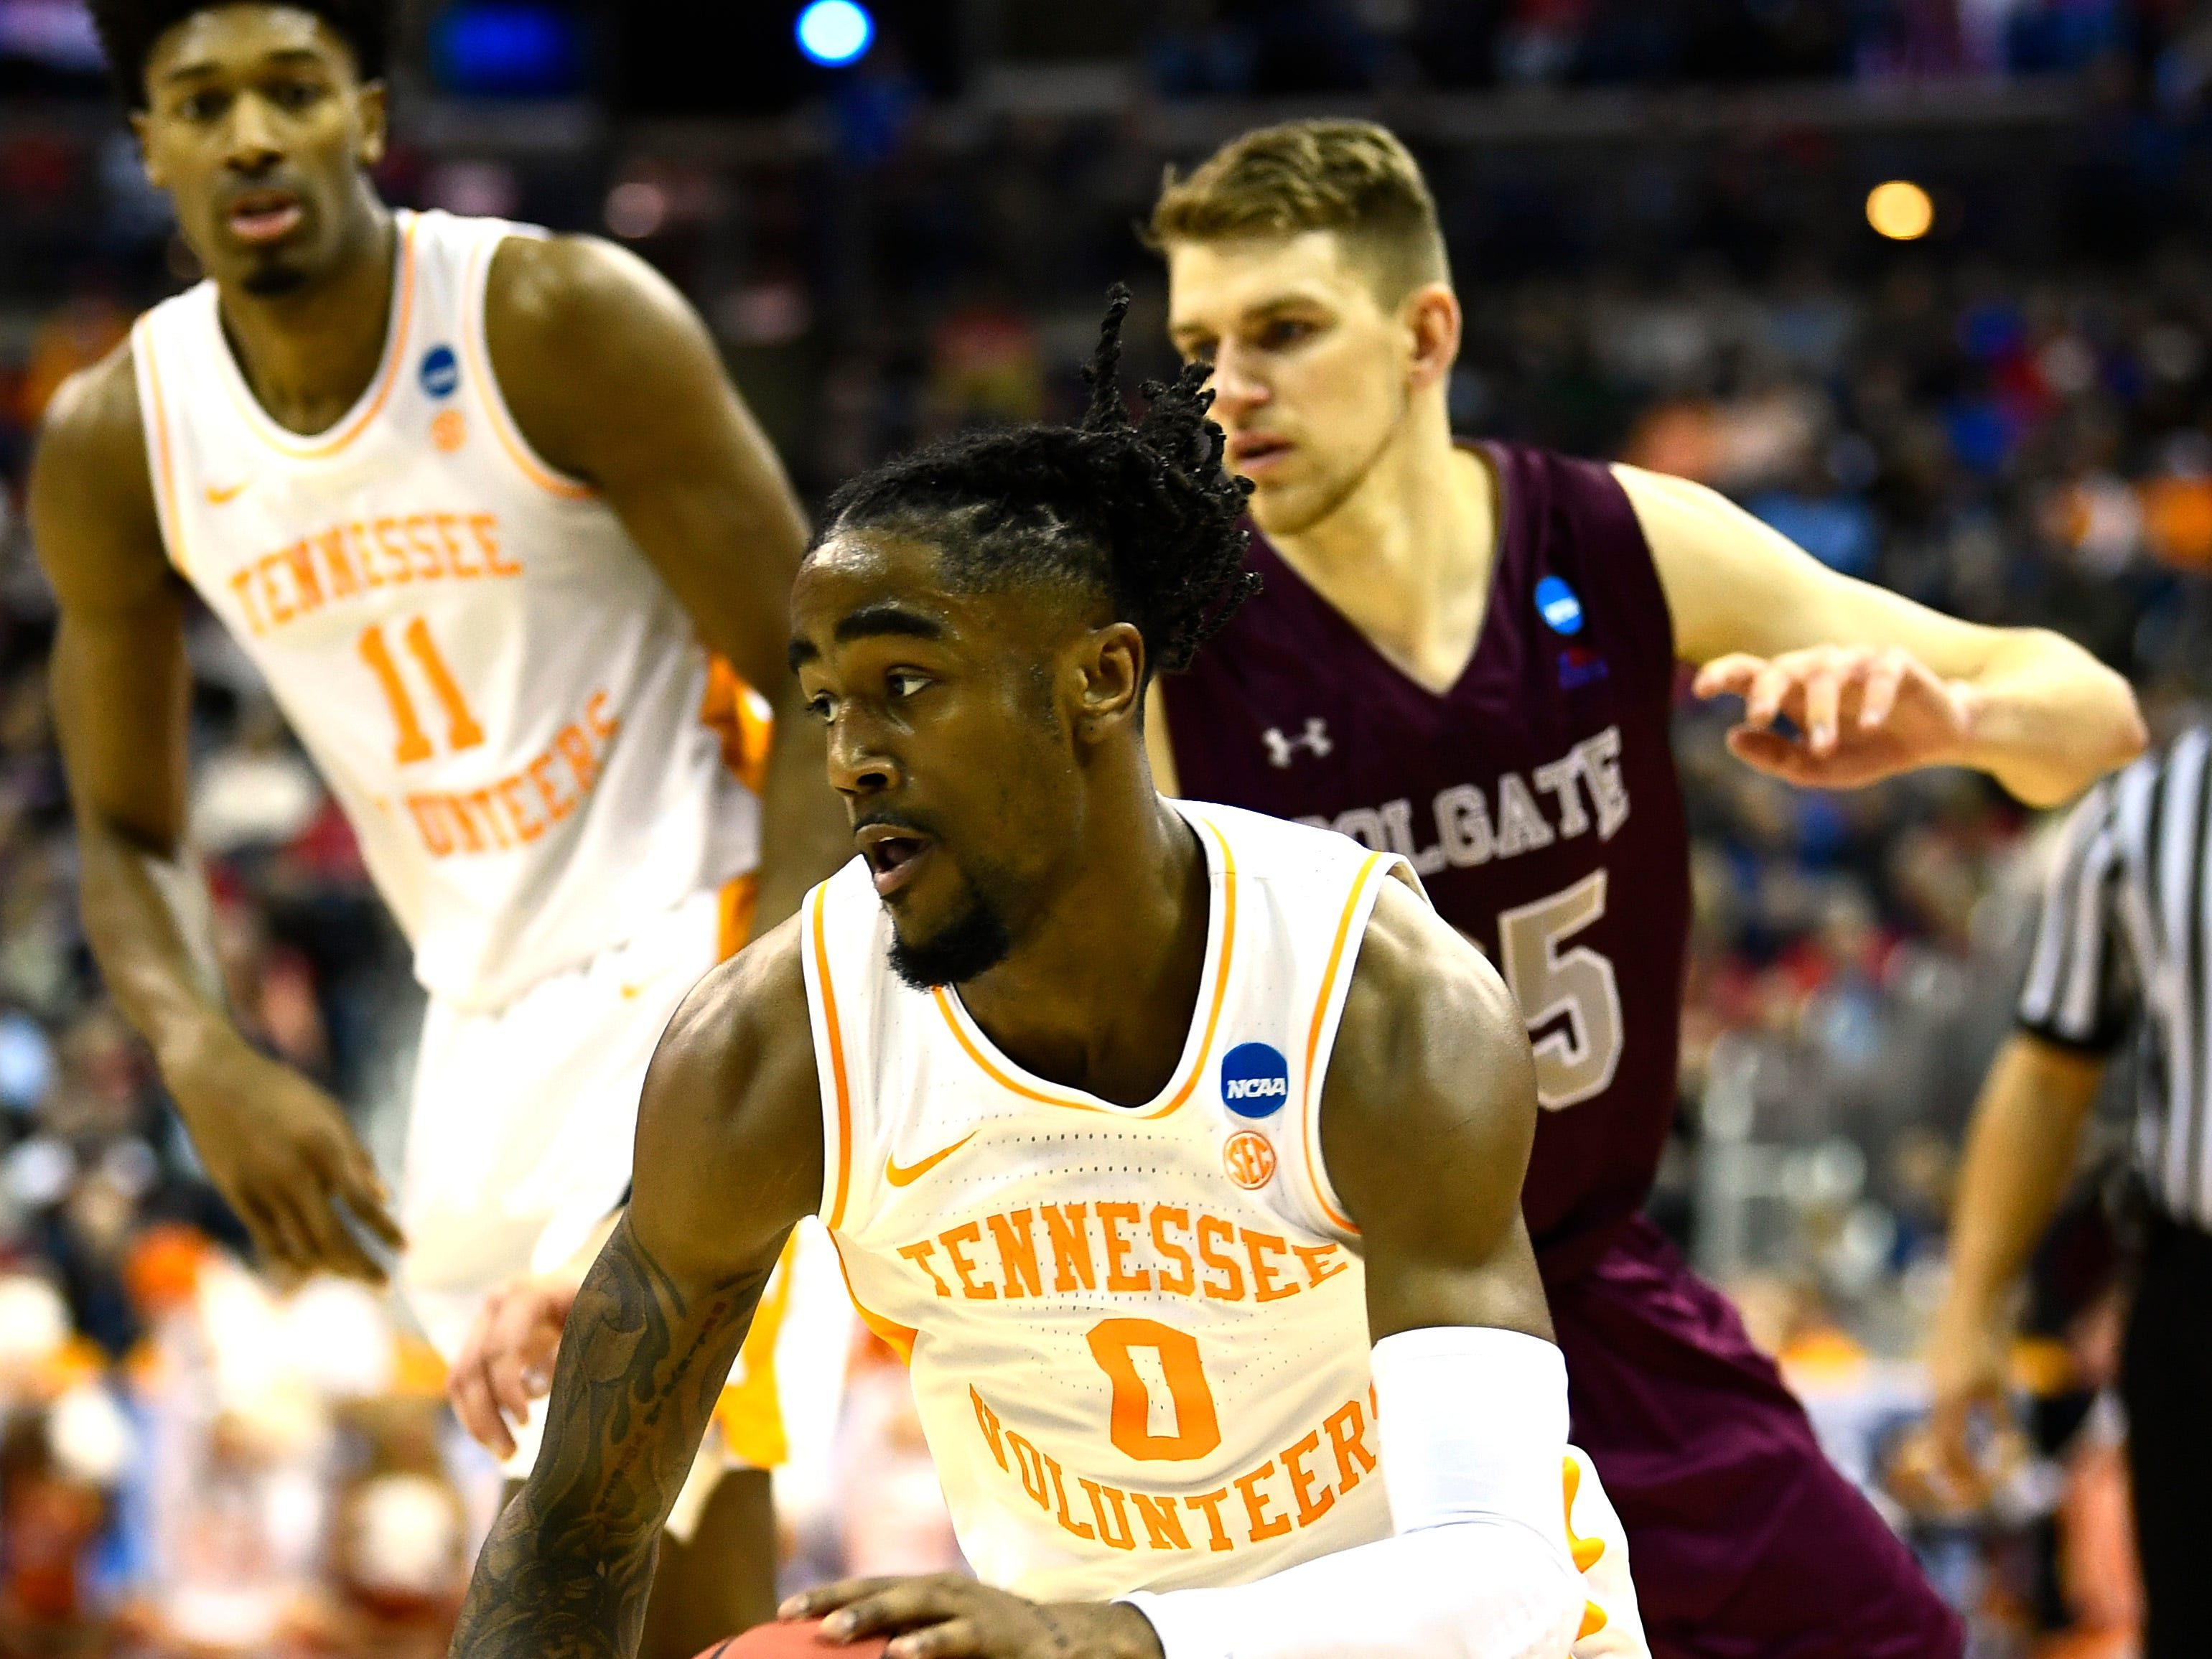 Tennessee guard Jordan Bone (0) drives to the basekt during the game against the Colgate Raiders in the first round of the NCAA Tournament at Nationwide Arena in Columbus, Ohio, on Friday, March 22, 2019.